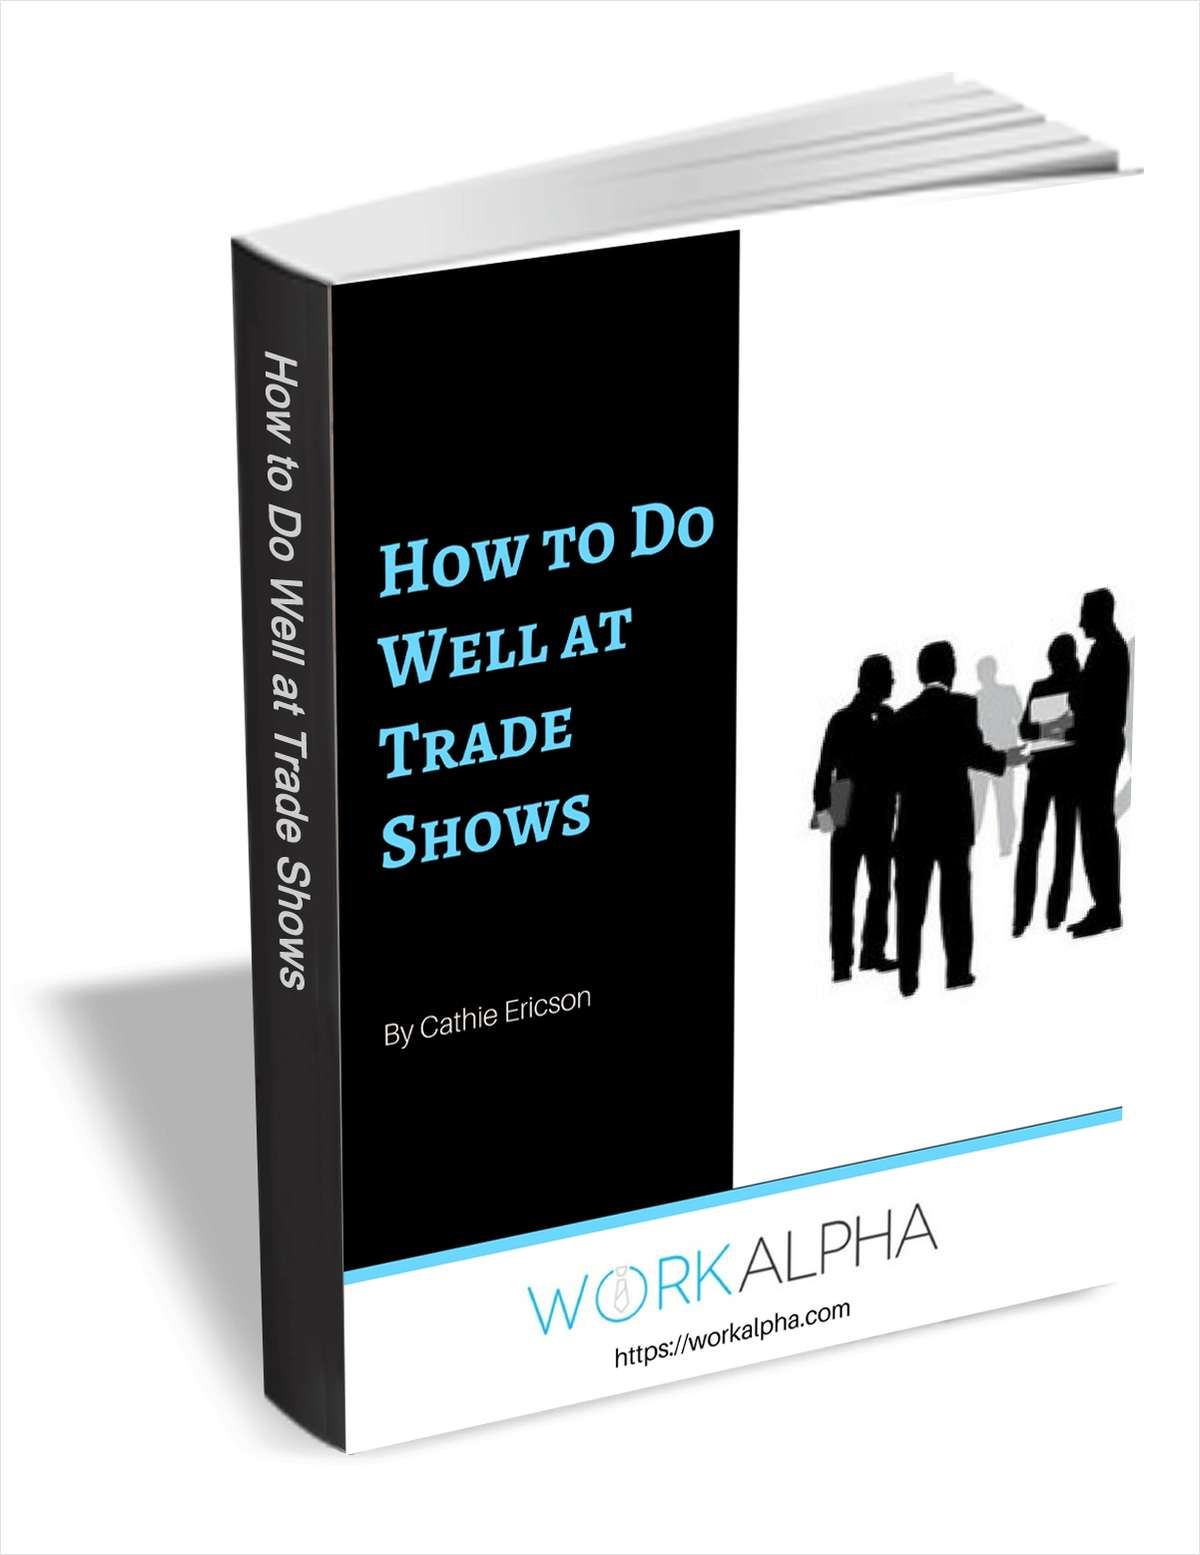 How to Do Well at Trade Shows